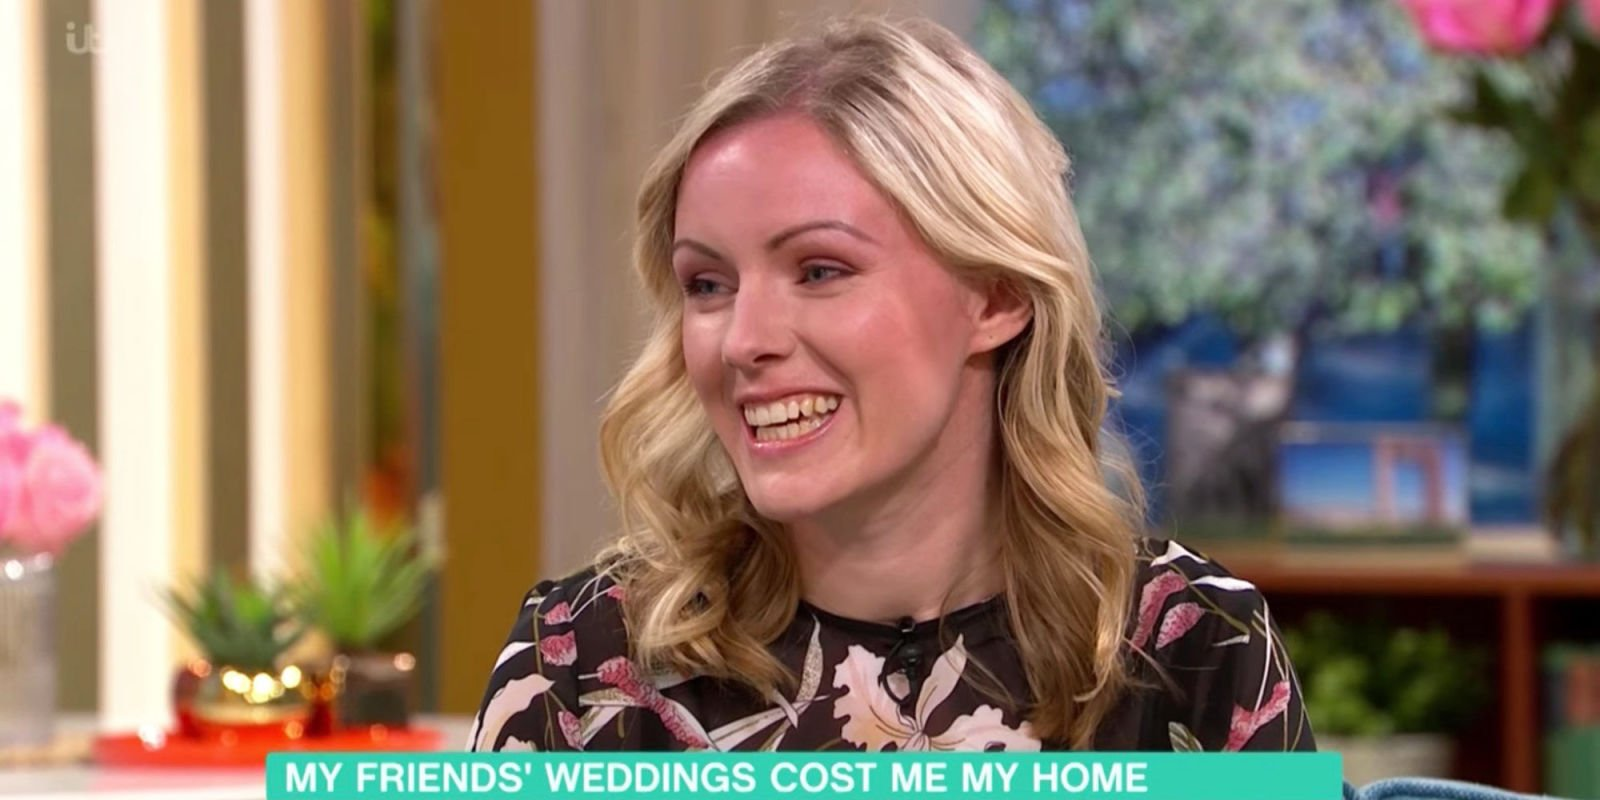 This Morning guest reveals she lost her house after spending £13,000 on her friends' weddings